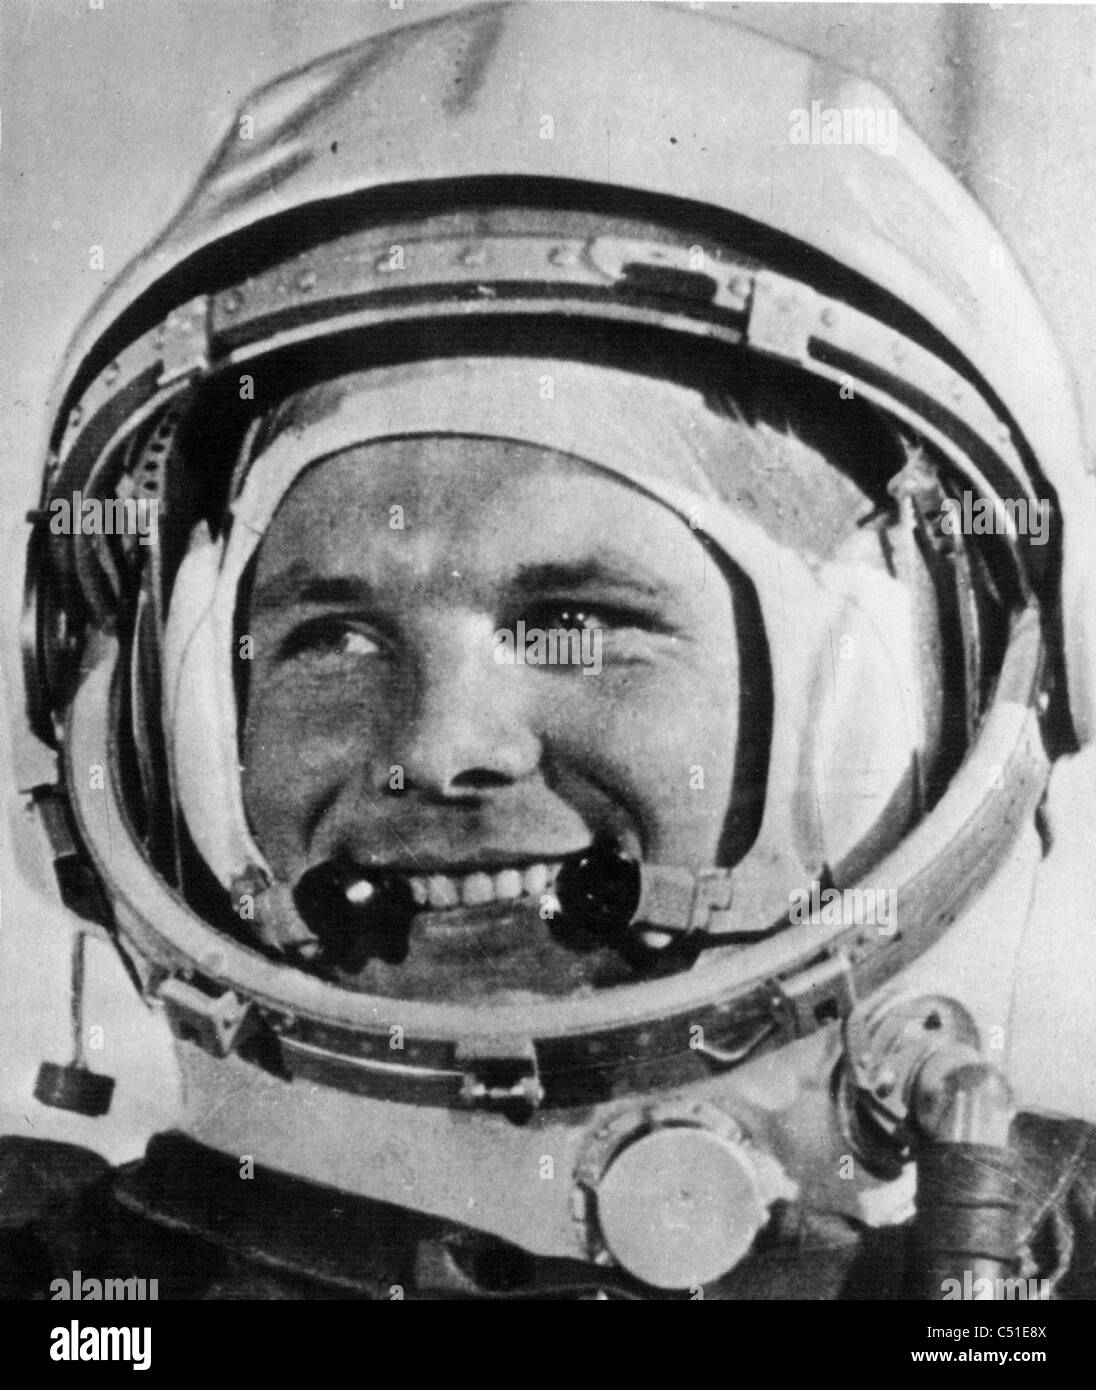 YURI GAGARIN (1934-1968) Soviet astronaut,first person to enter outer space when his Vostok space orbited the earth - Stock Image